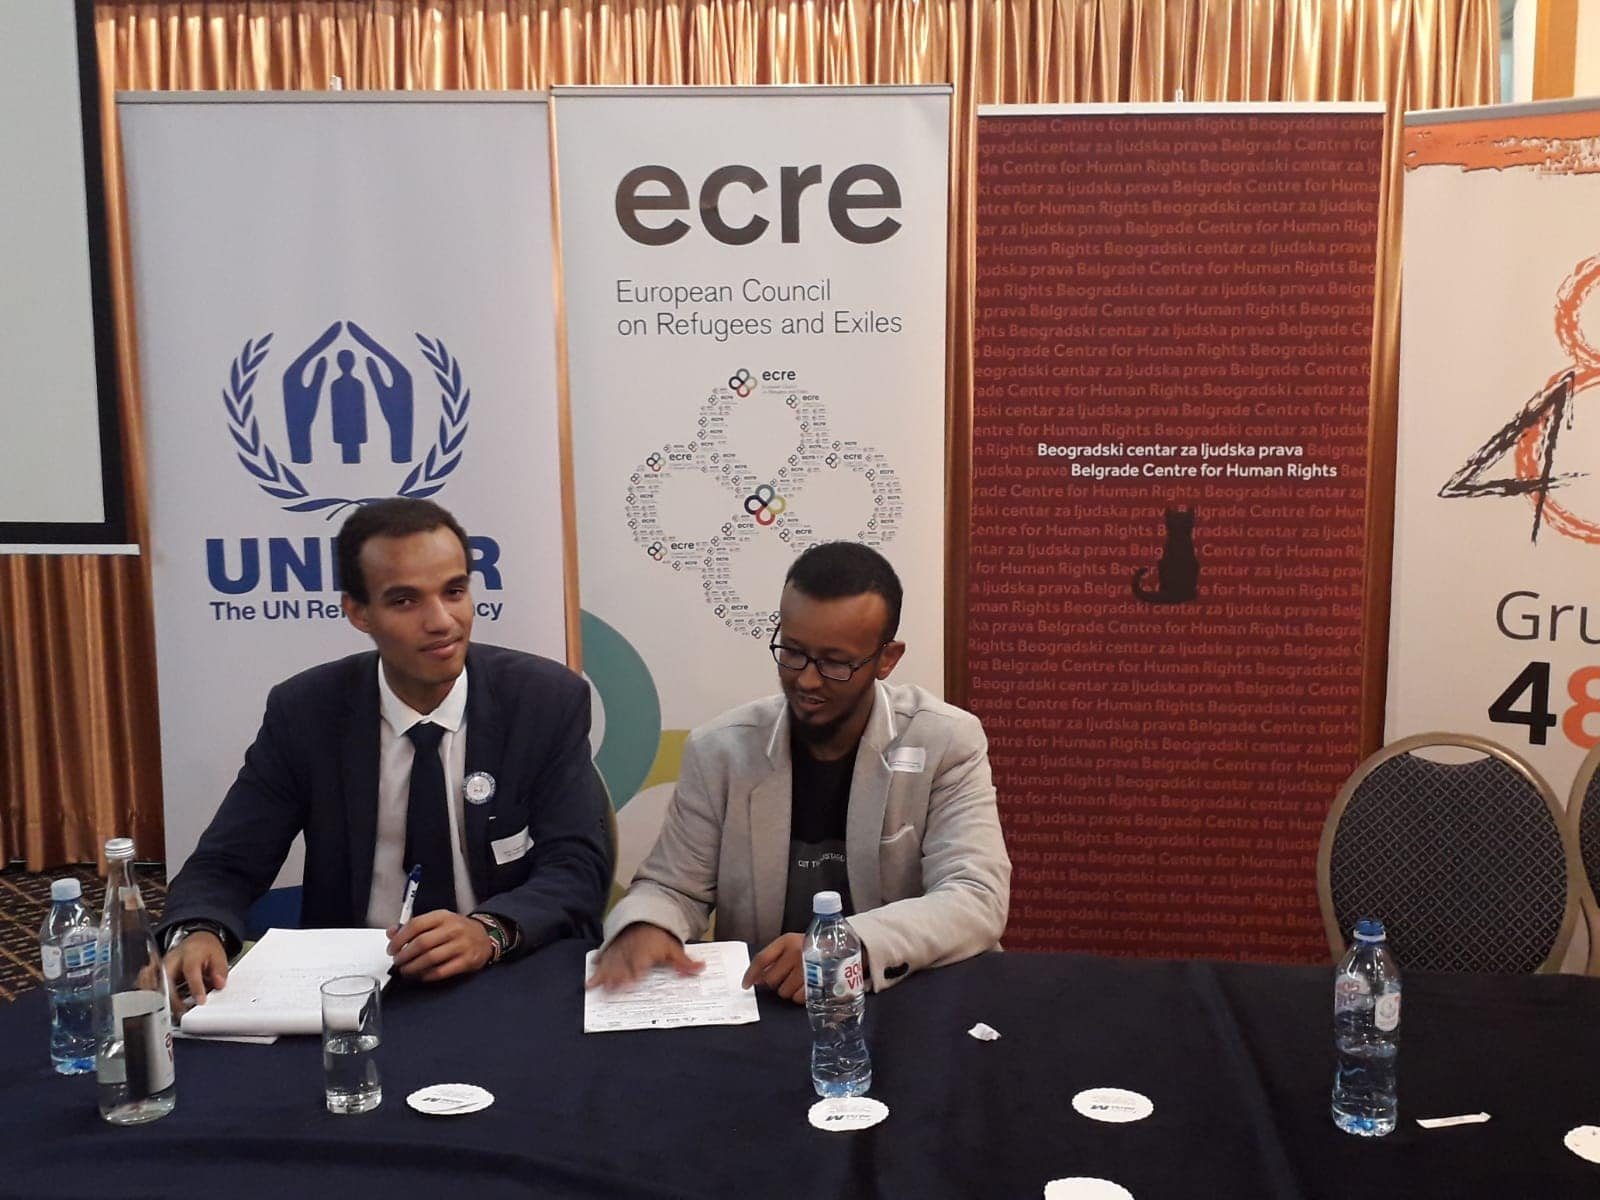 Human rights & asylum in Europe: A report from ECRE conference in Belgrade